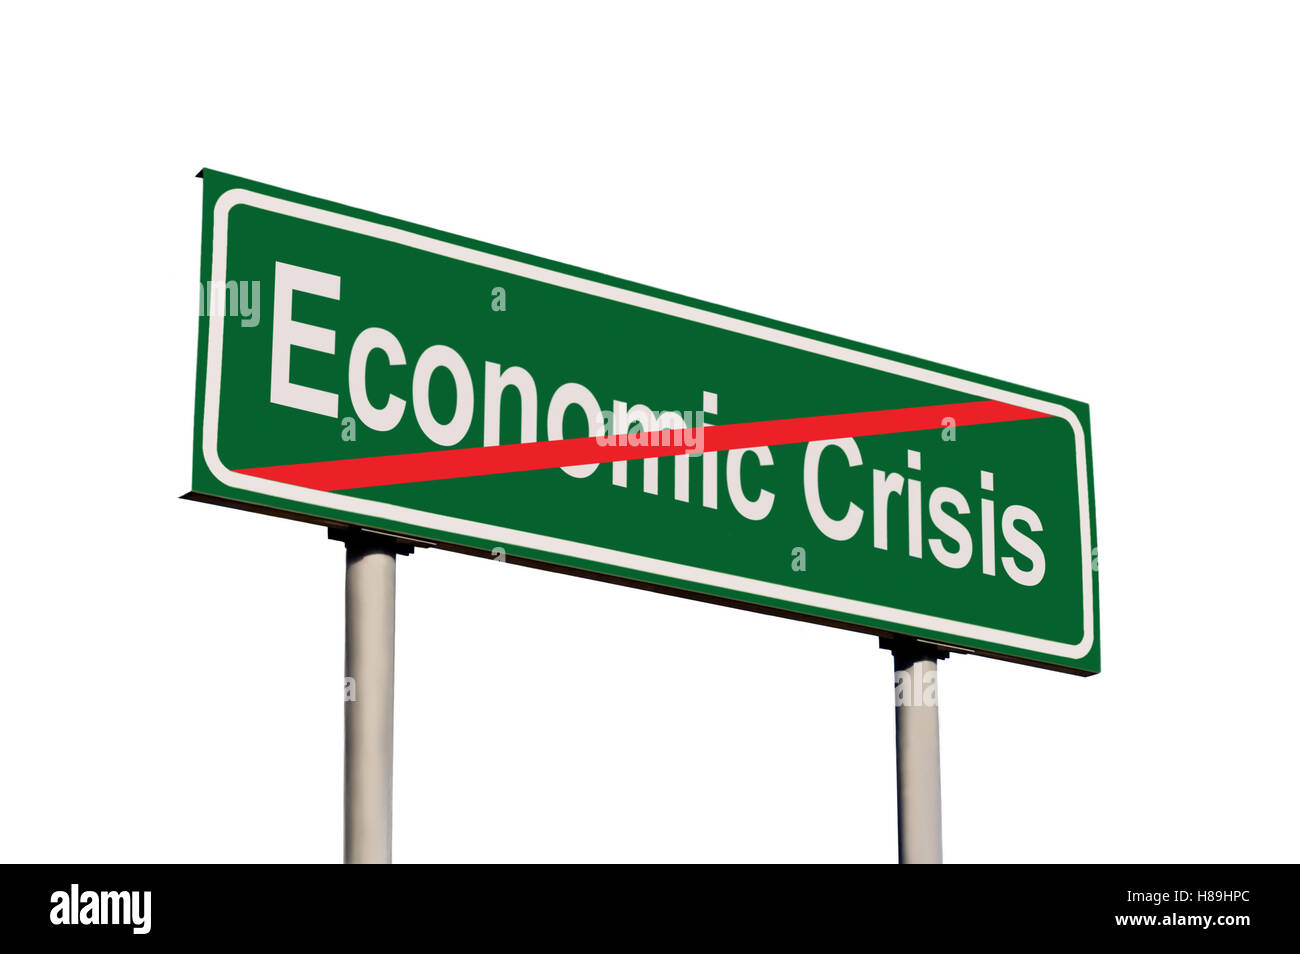 End Of Economic Crisis Green Road Sign, Isolated White Frame Closeup - Stock Image